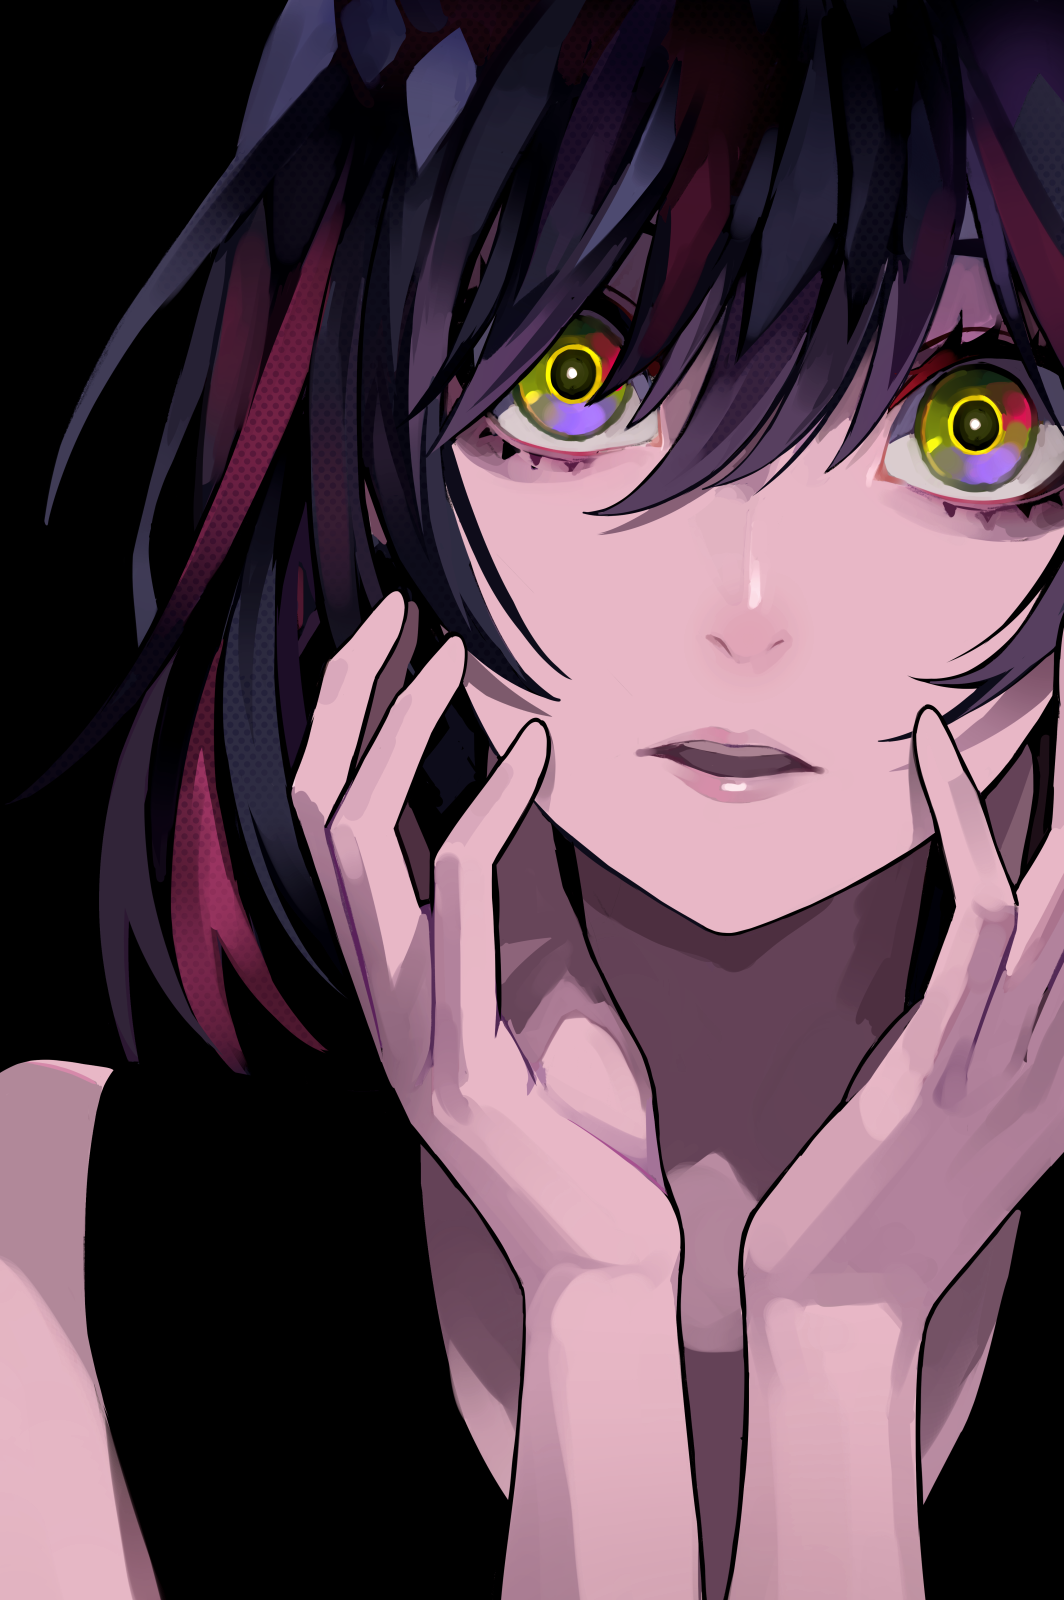 Anime 1064x1600 anime girls anime original characters dark hair shoulder length hair looking at viewer open mouth touching face portrait display black background dark artwork 2D digital art drawing LAM